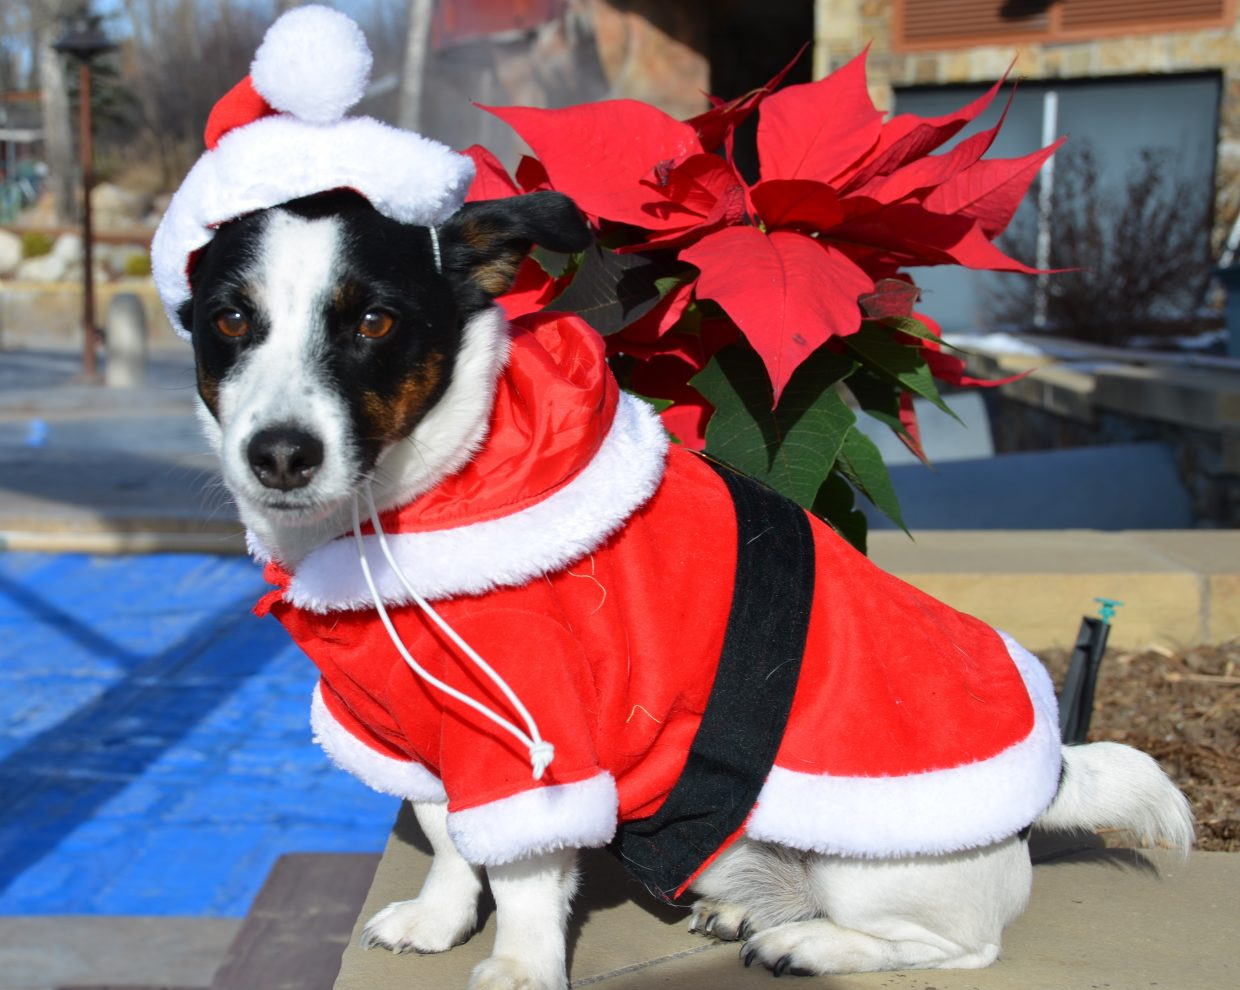 Happy Holidays from Gizmo at the Old Town Hot Springs. Submitted by: Shannon Lukens